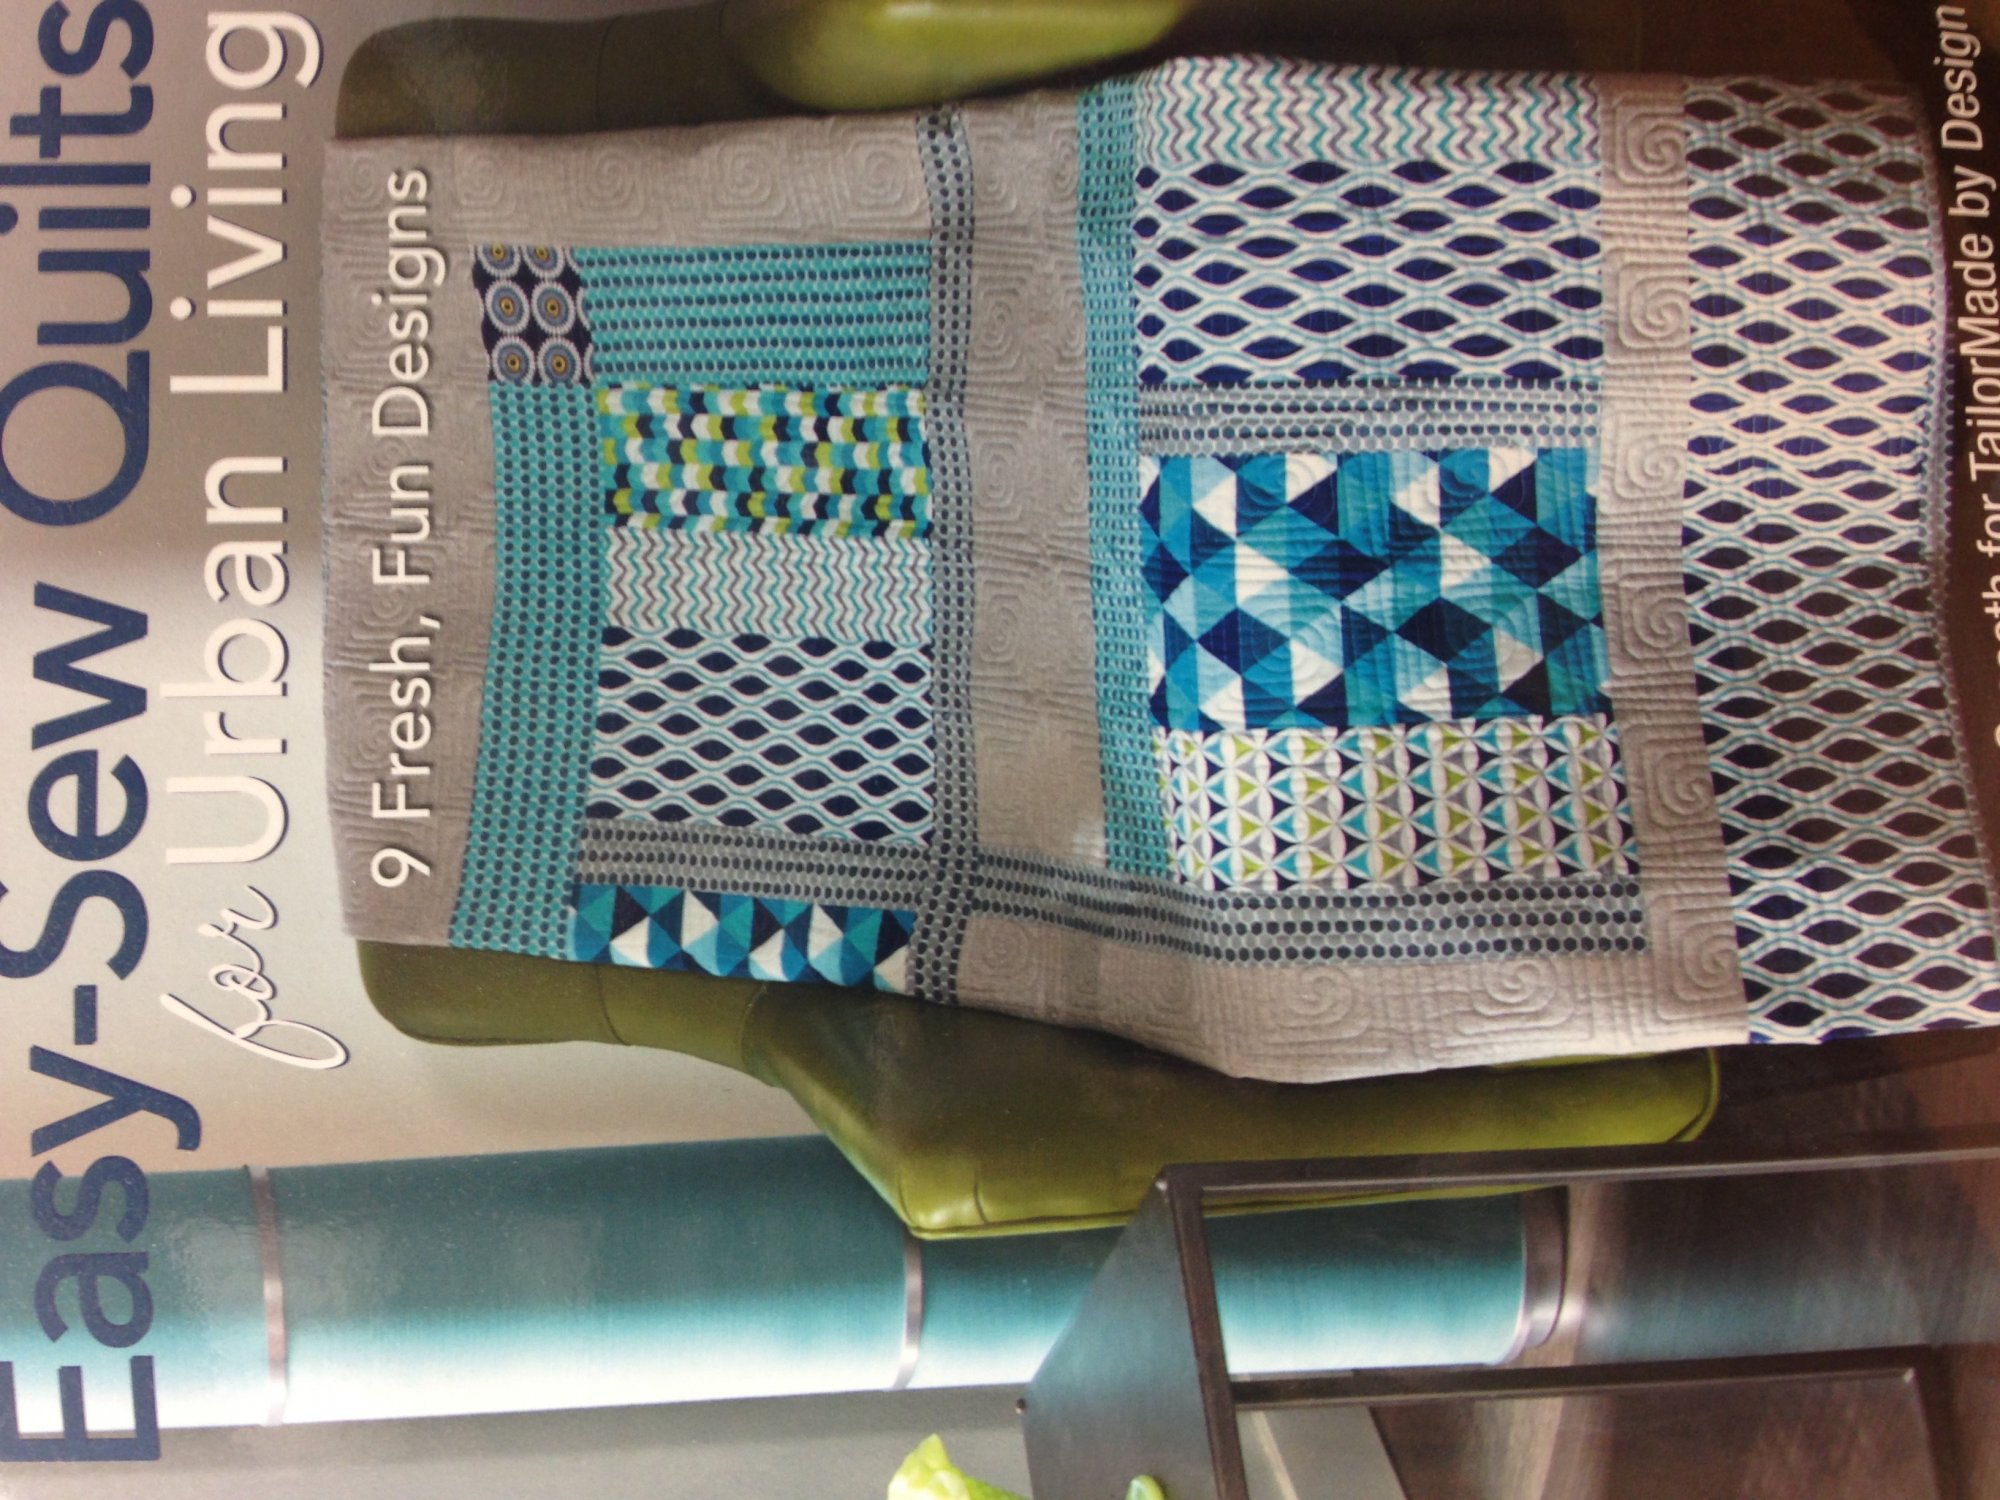 Easy-Sew Quilts for Urban Living - Softcover